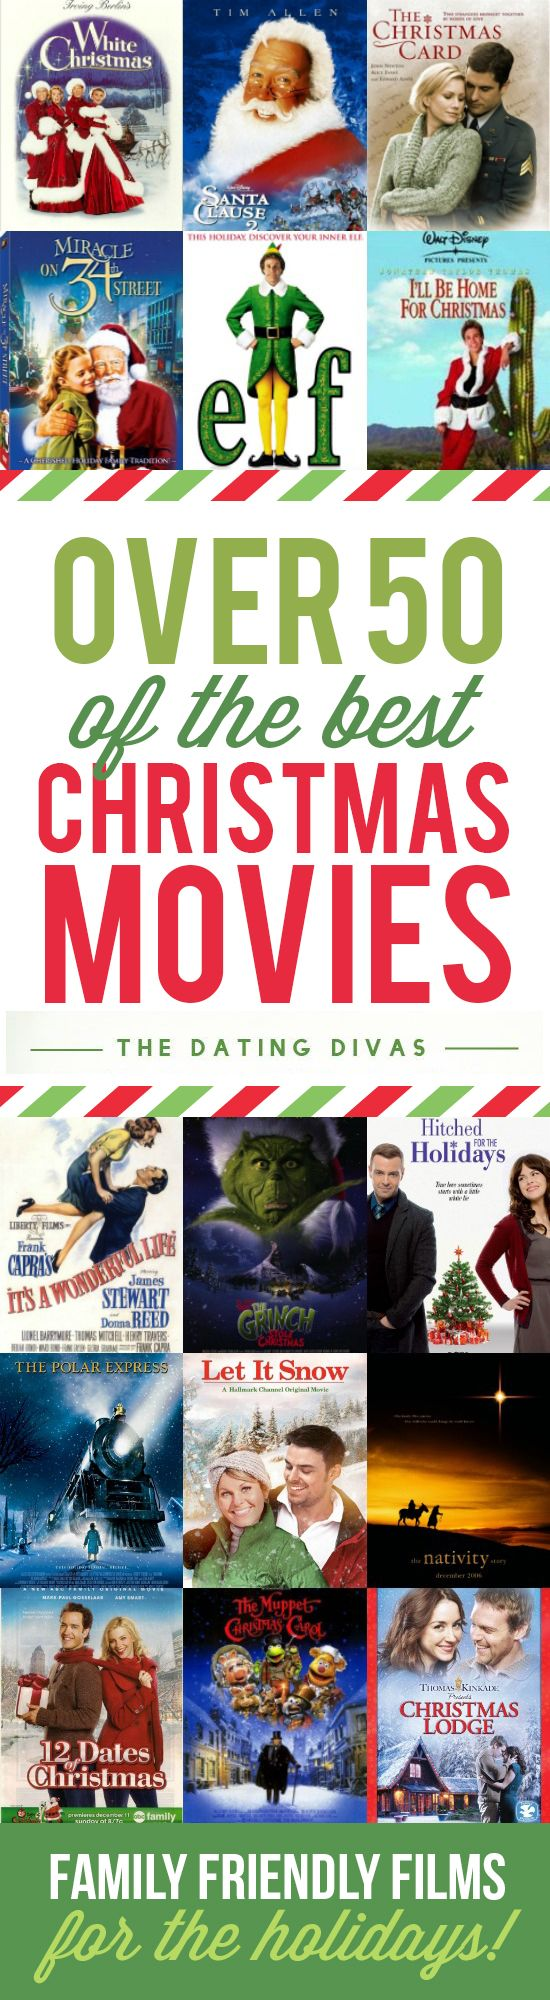 Over 50 Of The Best Christmas Movies The Dating Divas Christmas Movies Best Christmas Movies Christmas Love